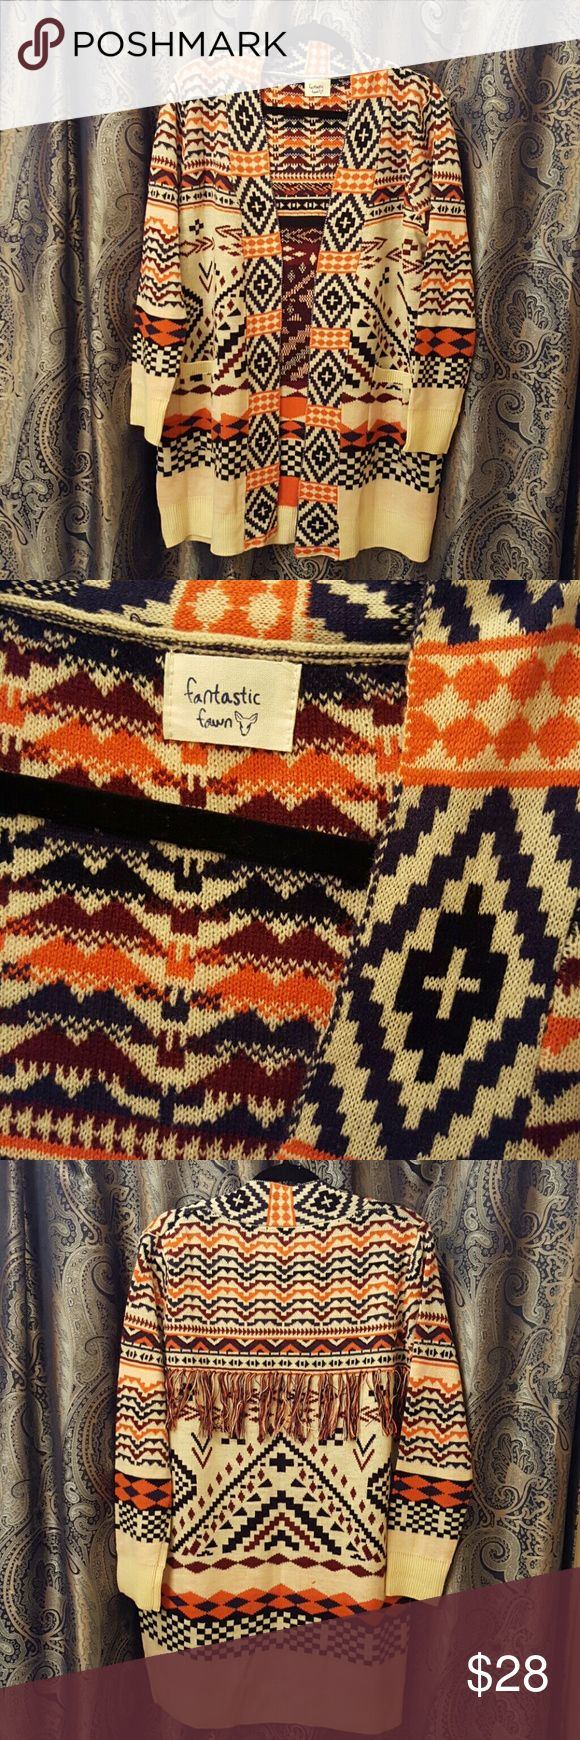 Beautiful Fantastic Fawn Aztec print cardigan Aztec print  oversized cardigan. Cream background with orange, black, maroon print. 100% Acrylic New without tags. Never worn. Fantastic Fawn Sweaters Cardigans